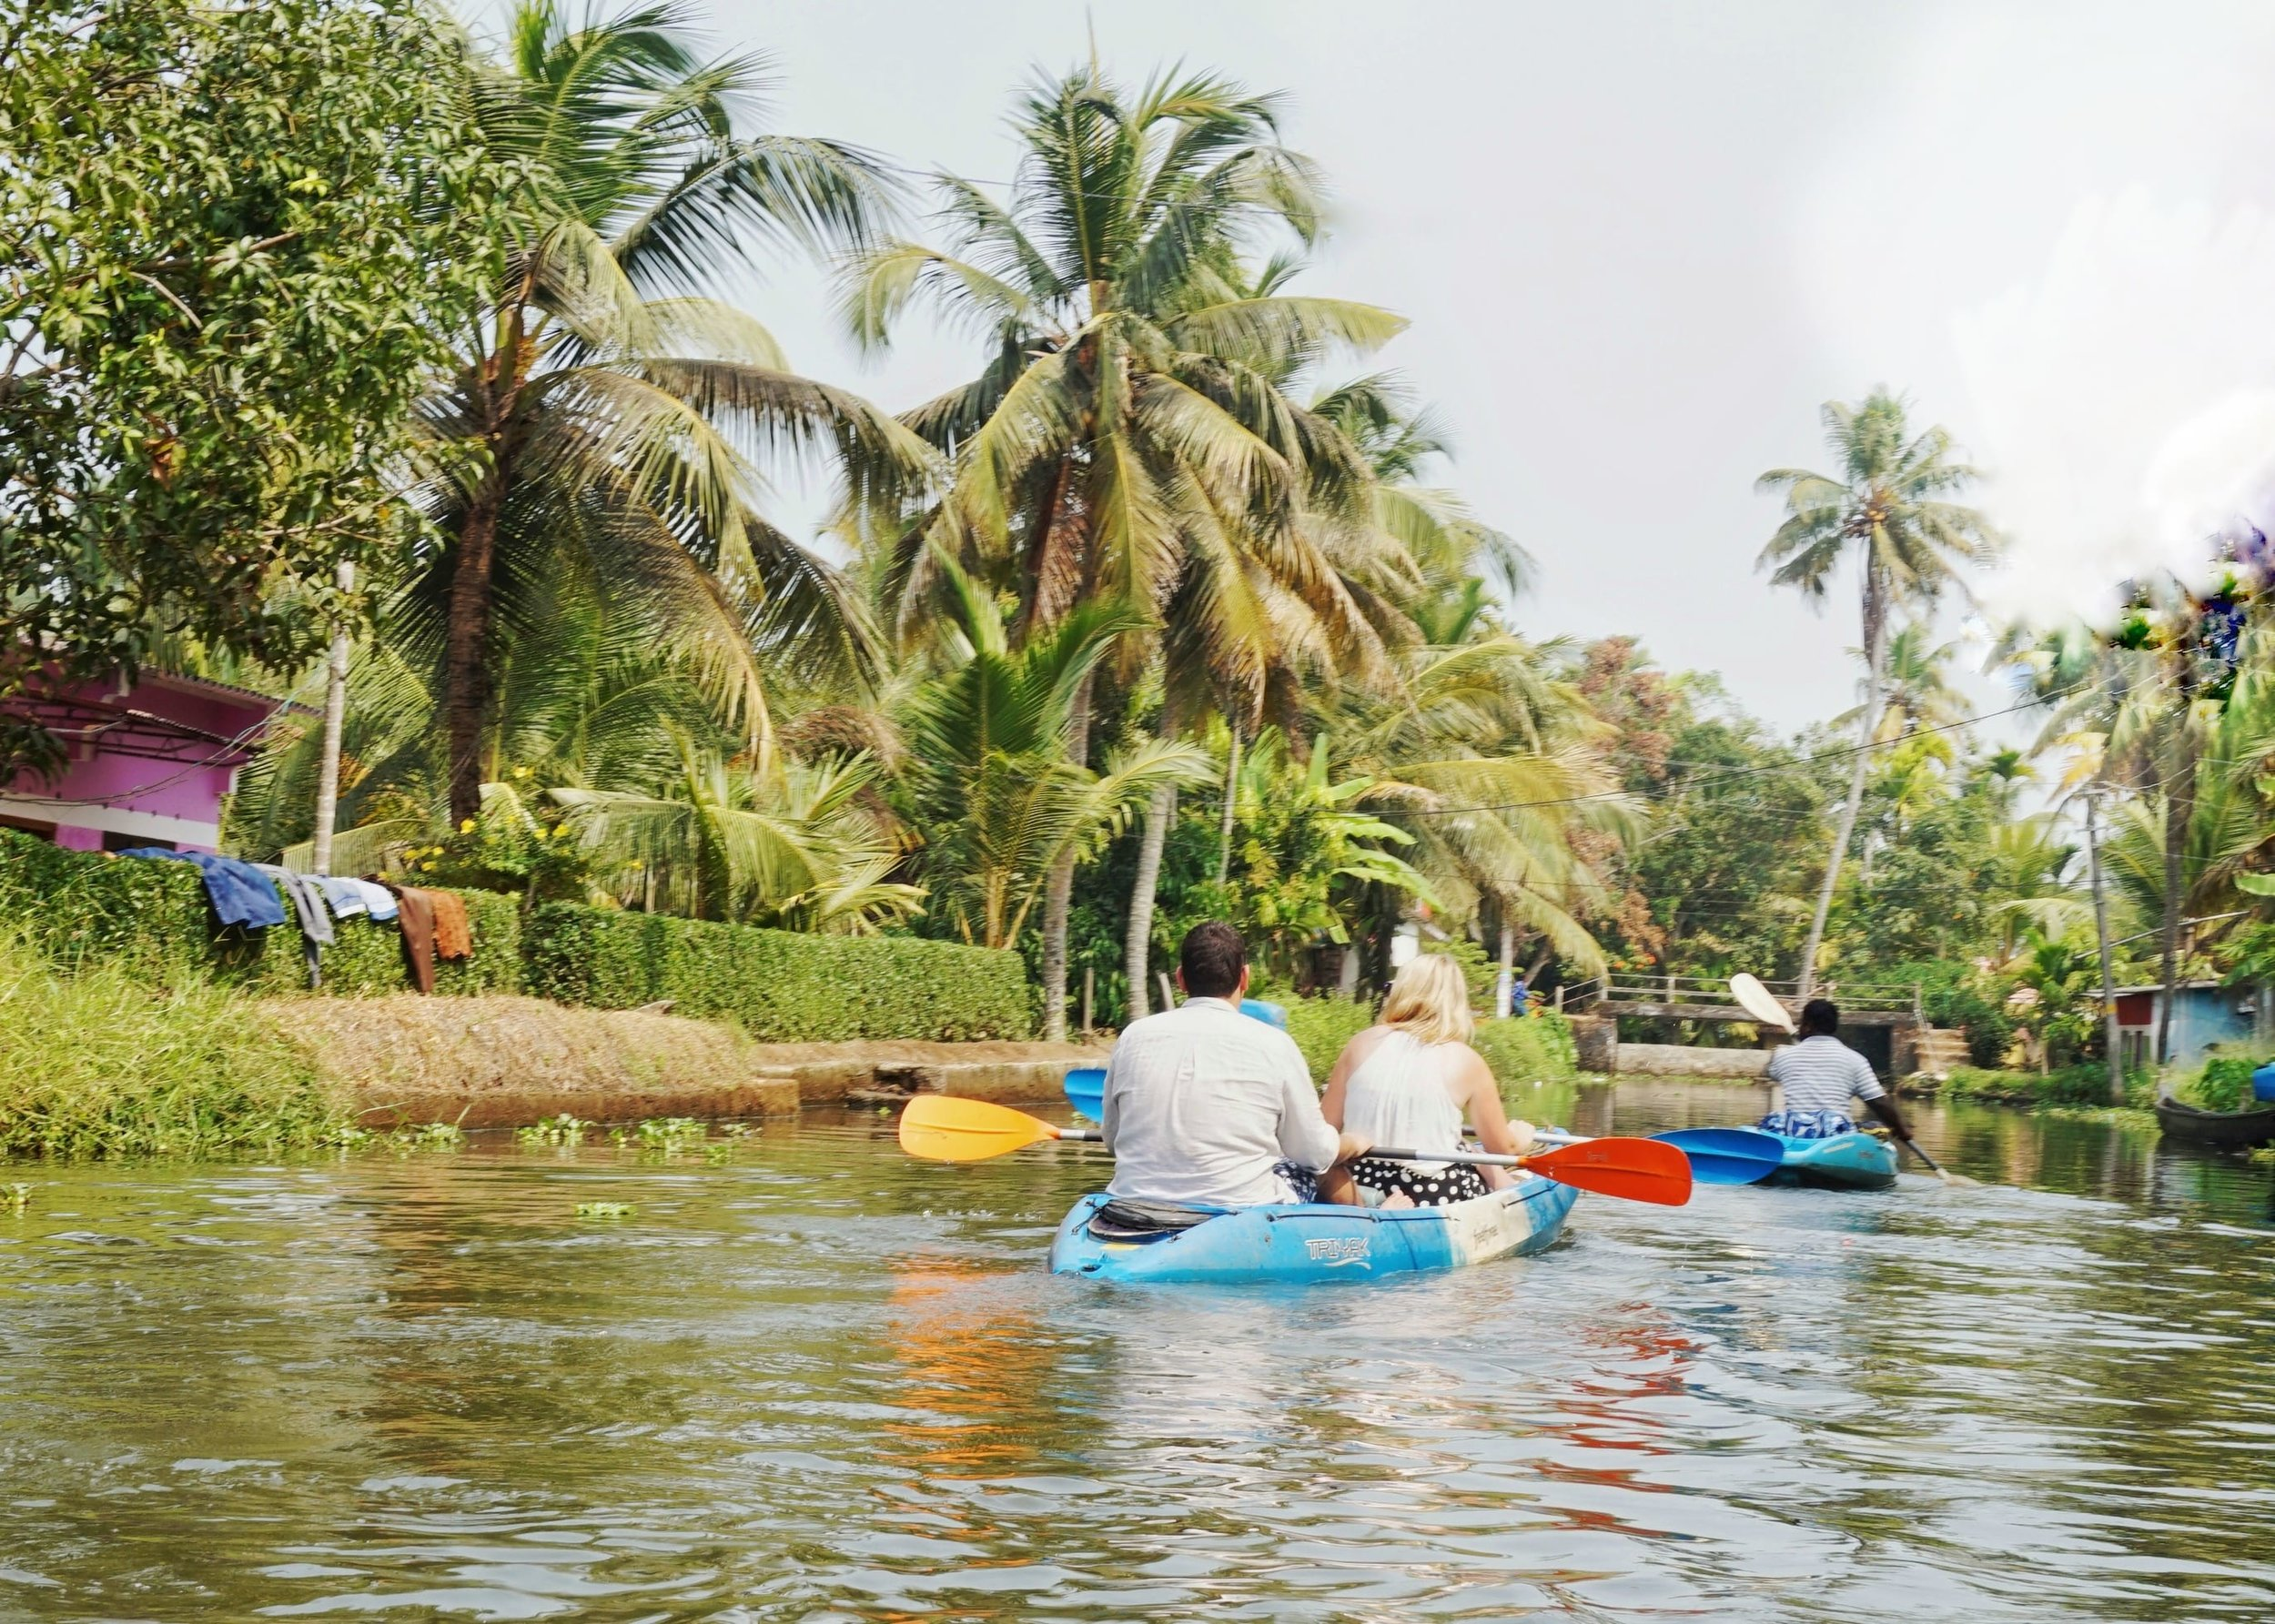 Alleppey backwaters tour by kayak. Backwaters of Kerala. Kerala backwaters tour.